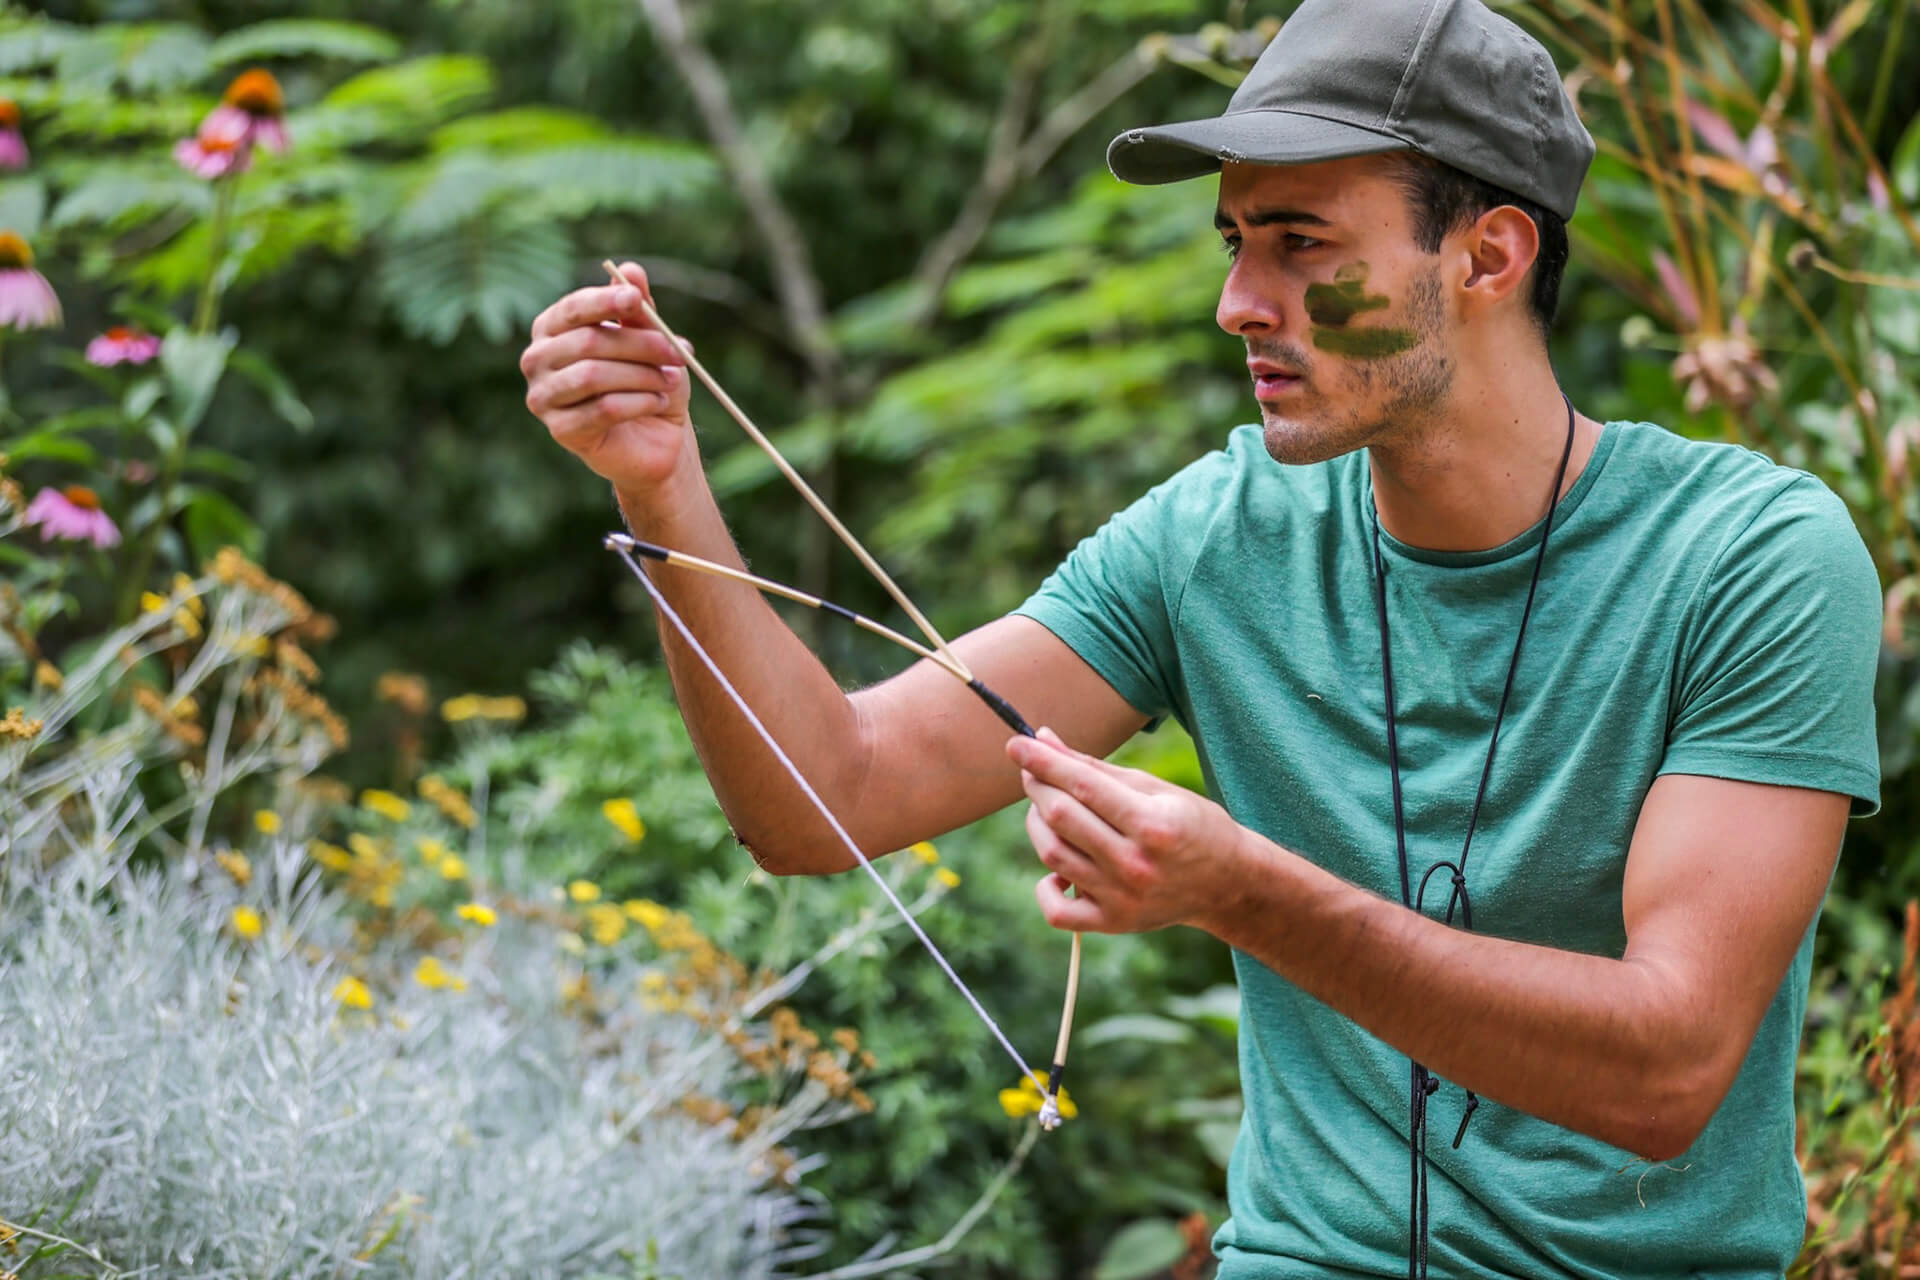 Jim's Bushcraft Parties - Bows & Arrows. My favourite of all the activities, this involves a step-by-step process on how to make a mini bamboo bow from scratch which is surprisingly powerful. Firing arrows up to 30 feet! Once completed the bows can be personalised and taken home too!